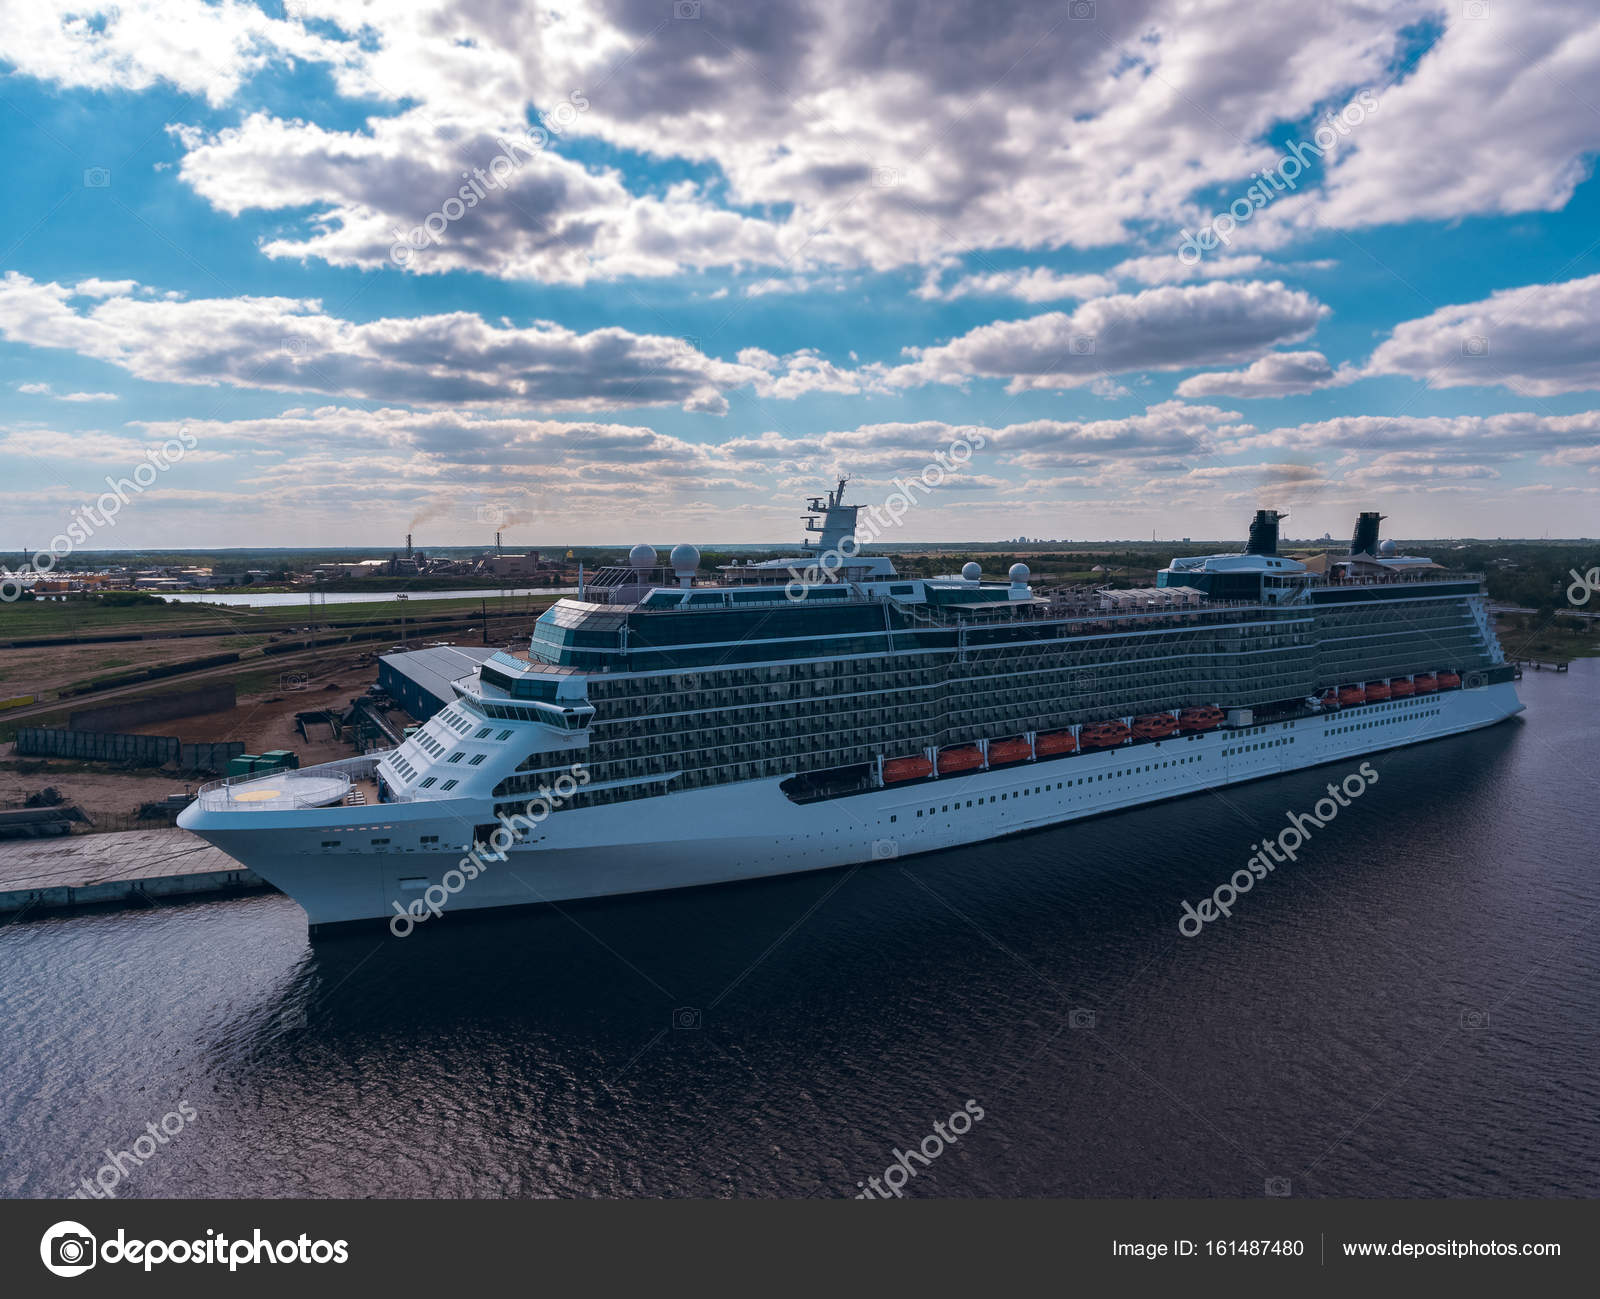 Giant Of Modern Photography At >> Giant Modern Cruise Liner Stock Editorial Photo C Sengnsp 161487480